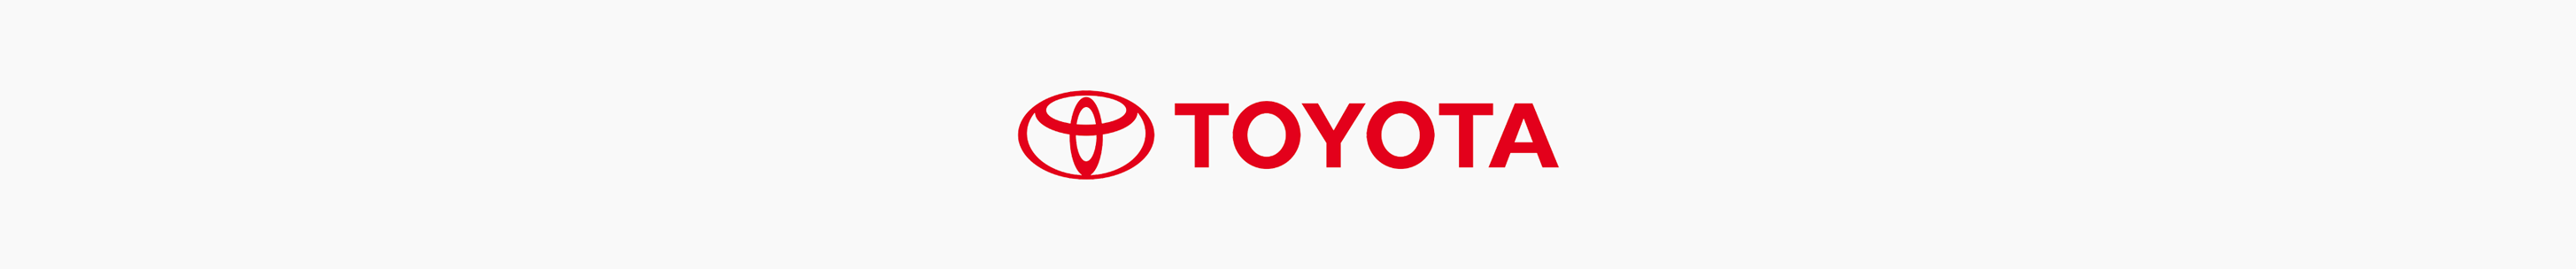 Globe Motors is a Toyota Authorised Dealer in Nigeria